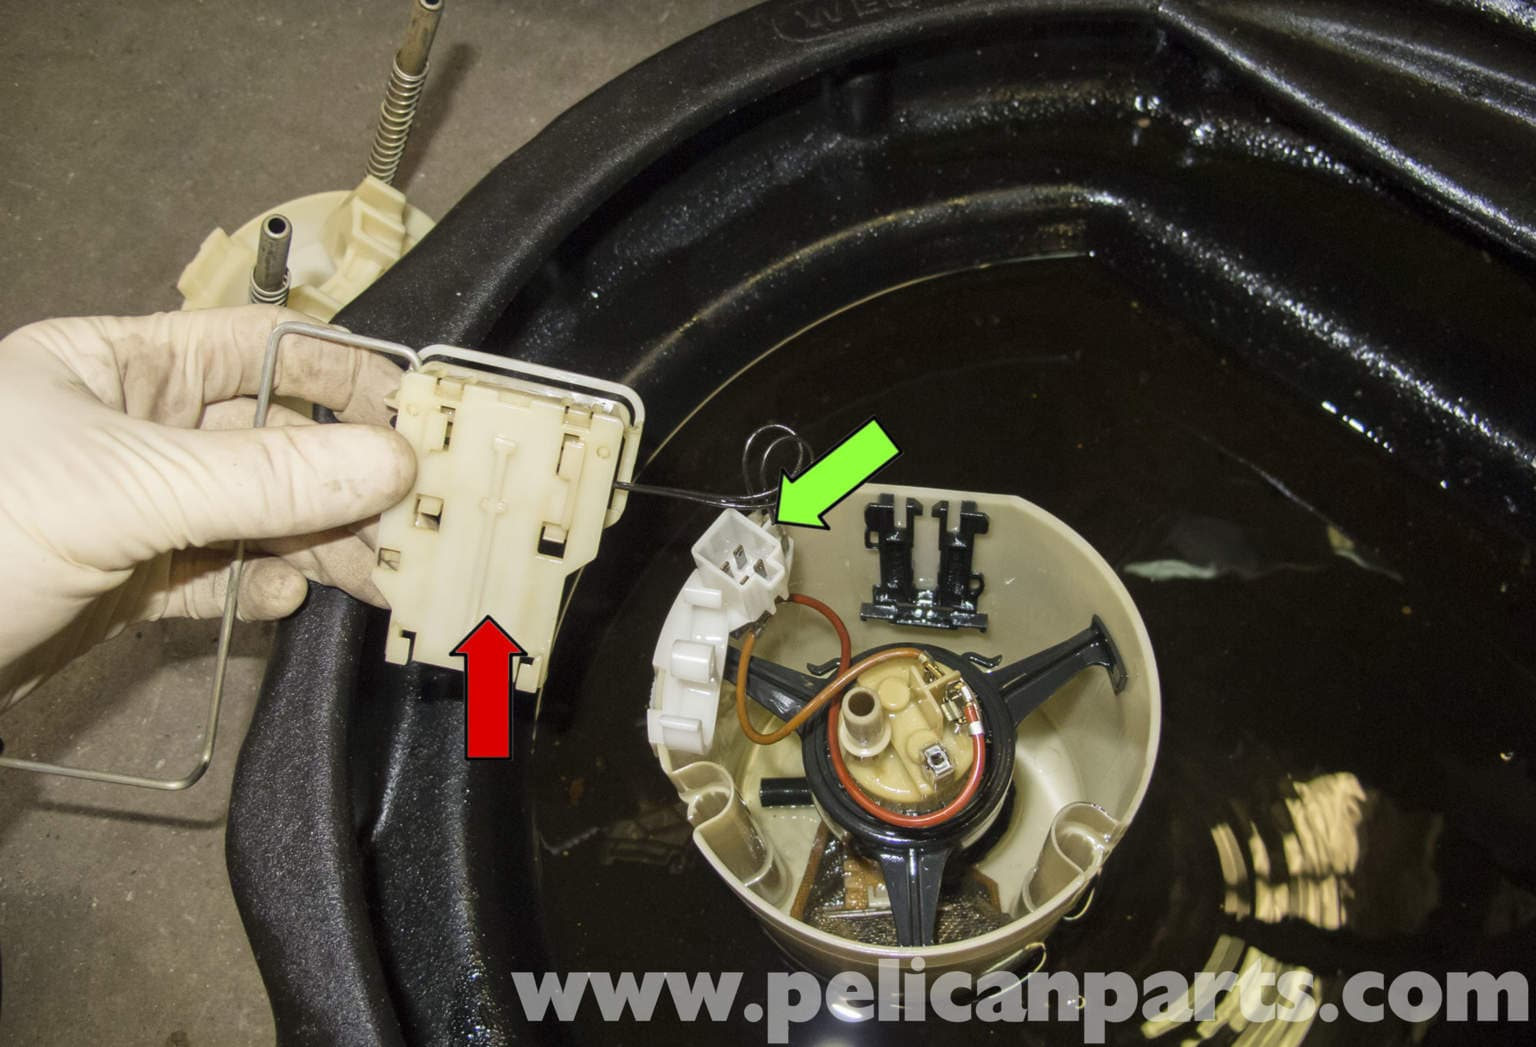 Mercedes benz w211 fuel pump replacement 2003 2009 e320 for Mercedes benz replacement parts for the interior